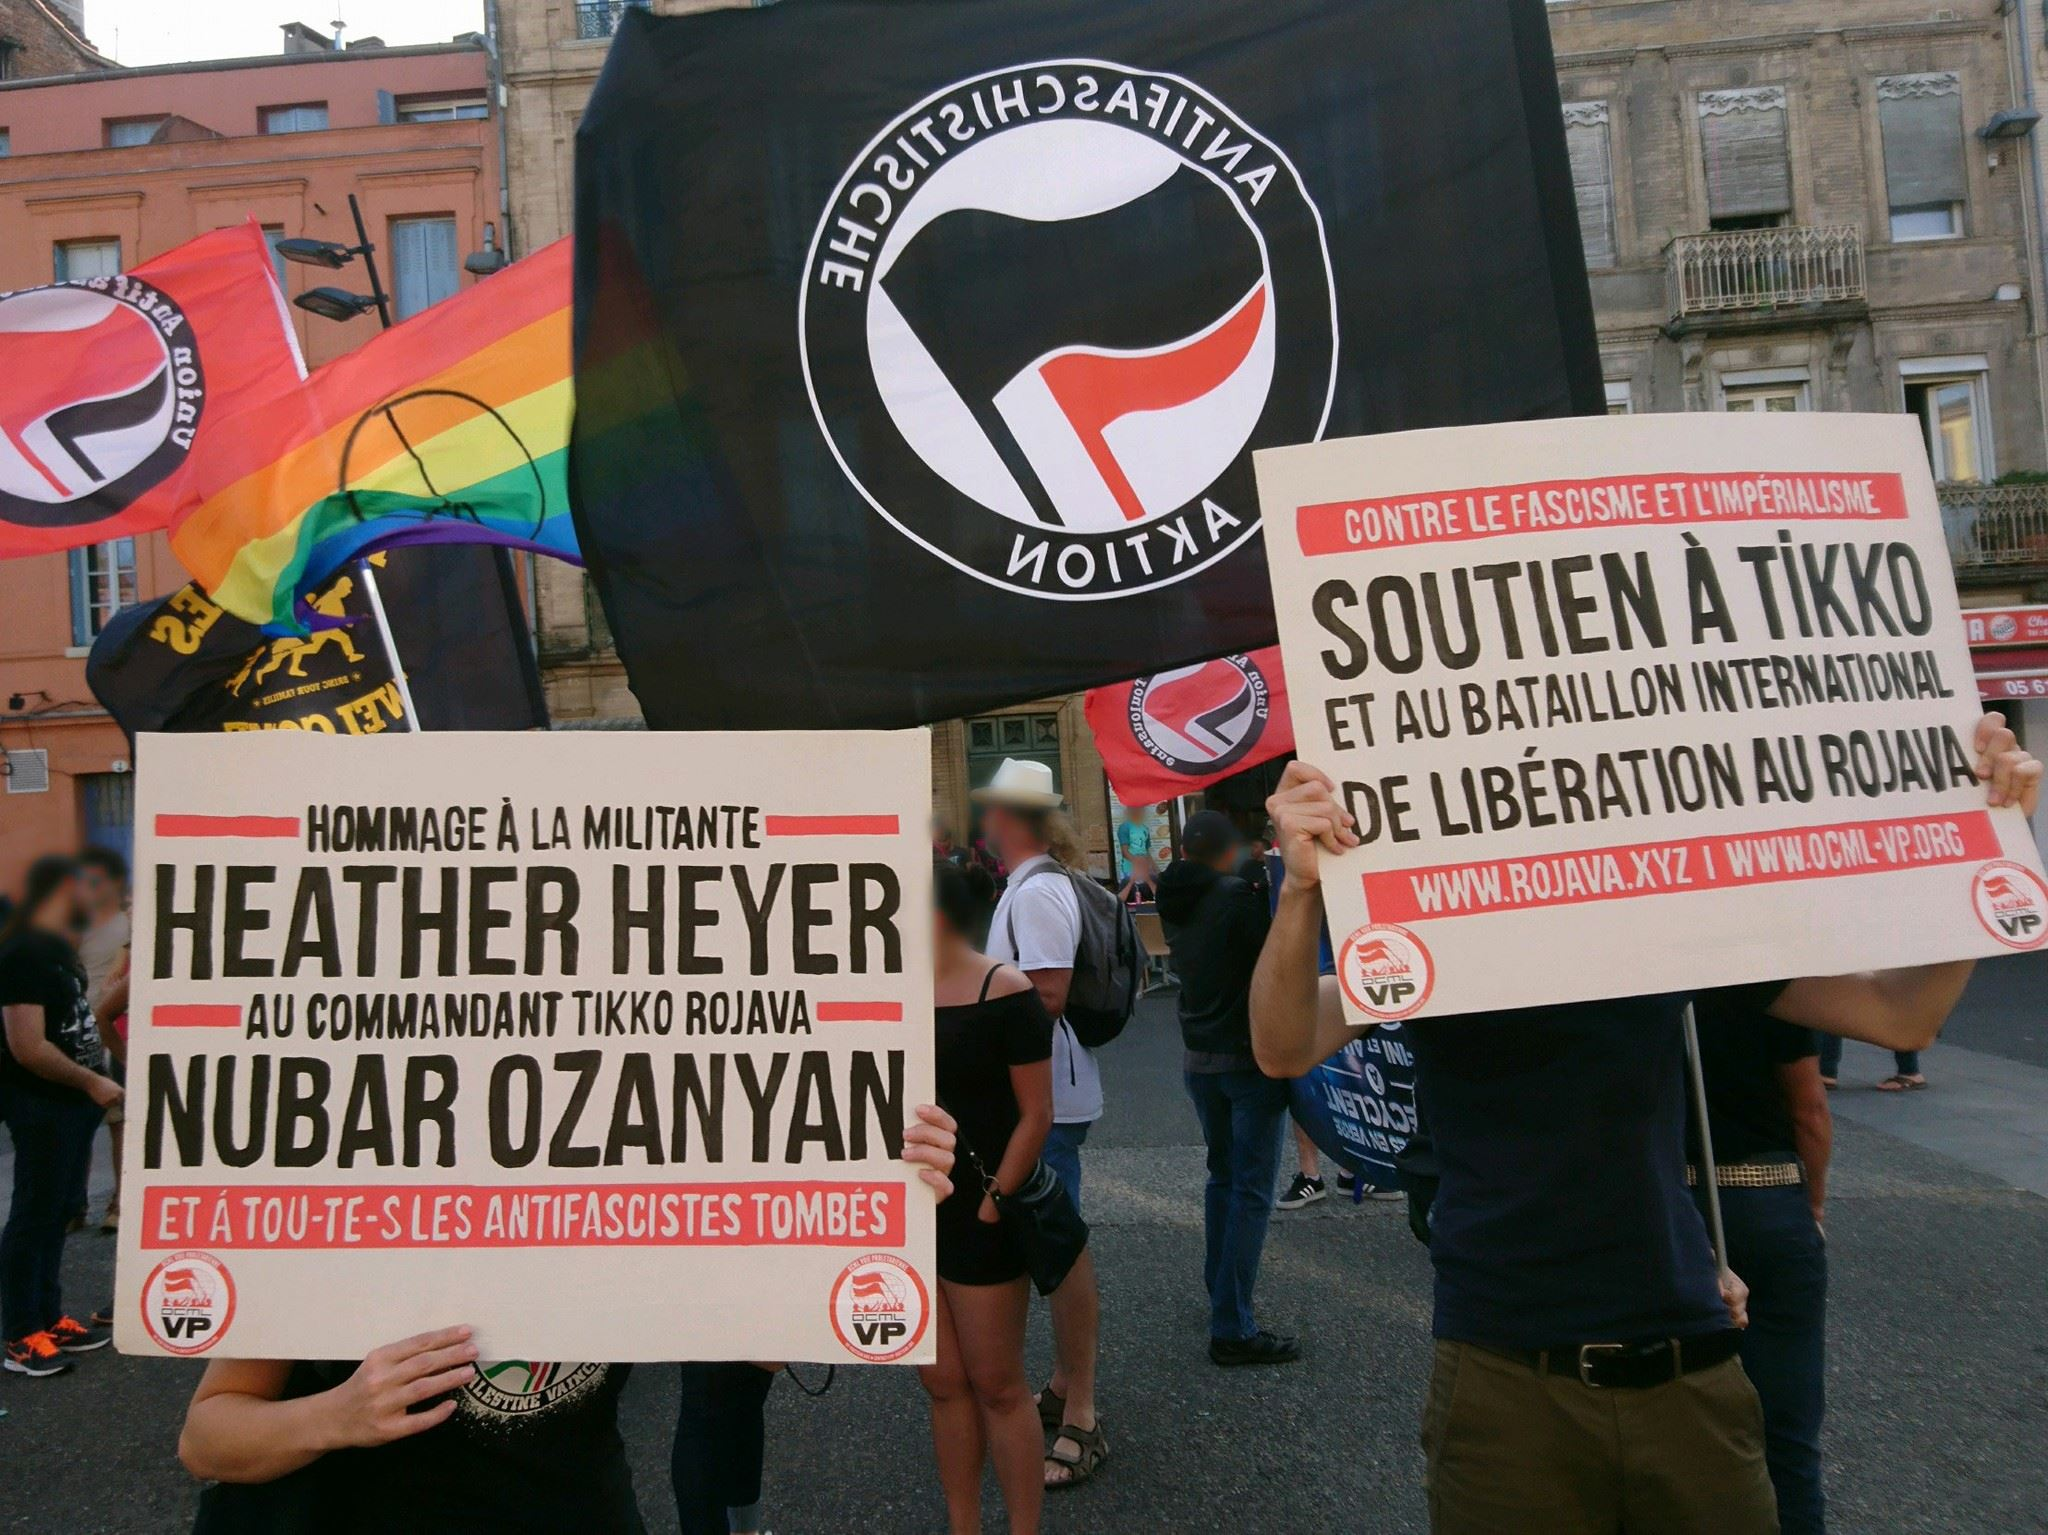 Hommages à Heather Heyer et Nubar Ozanyan à Toulouse.